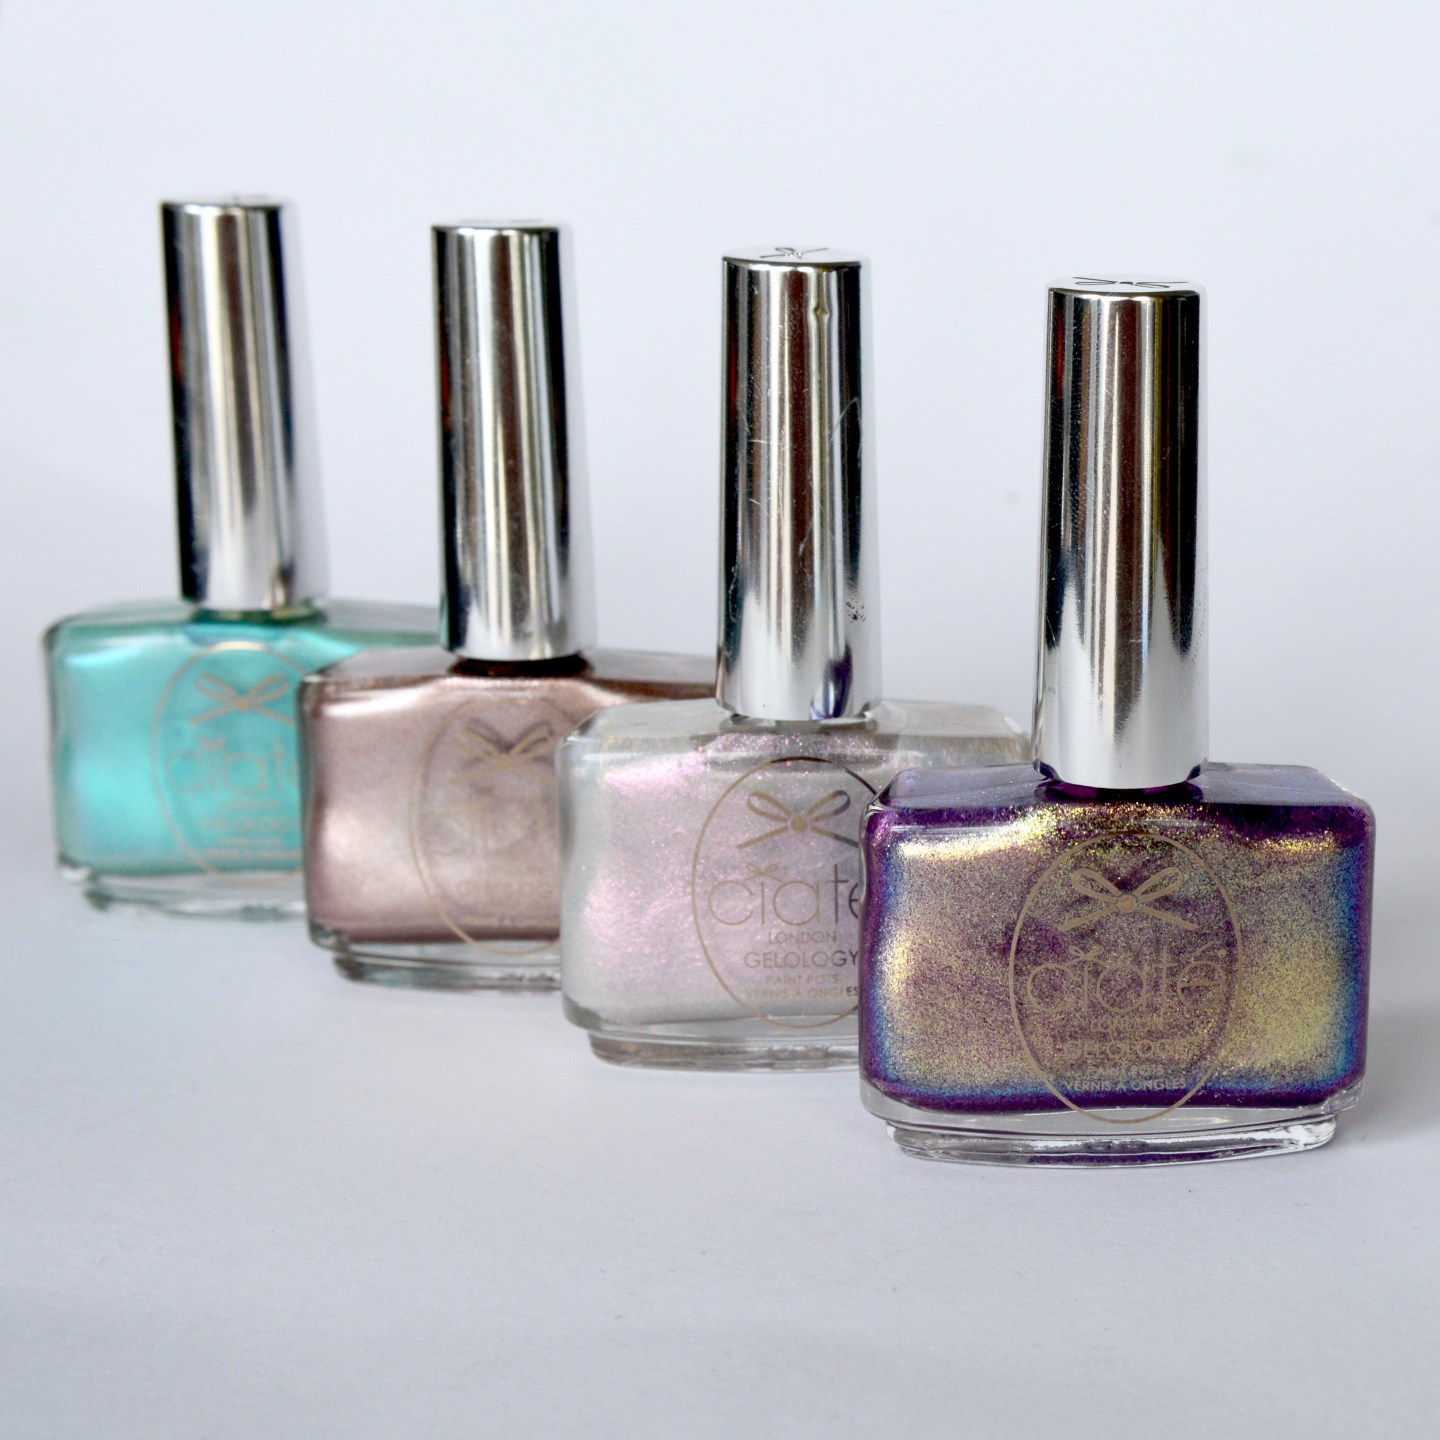 Ciaté Geology polishes